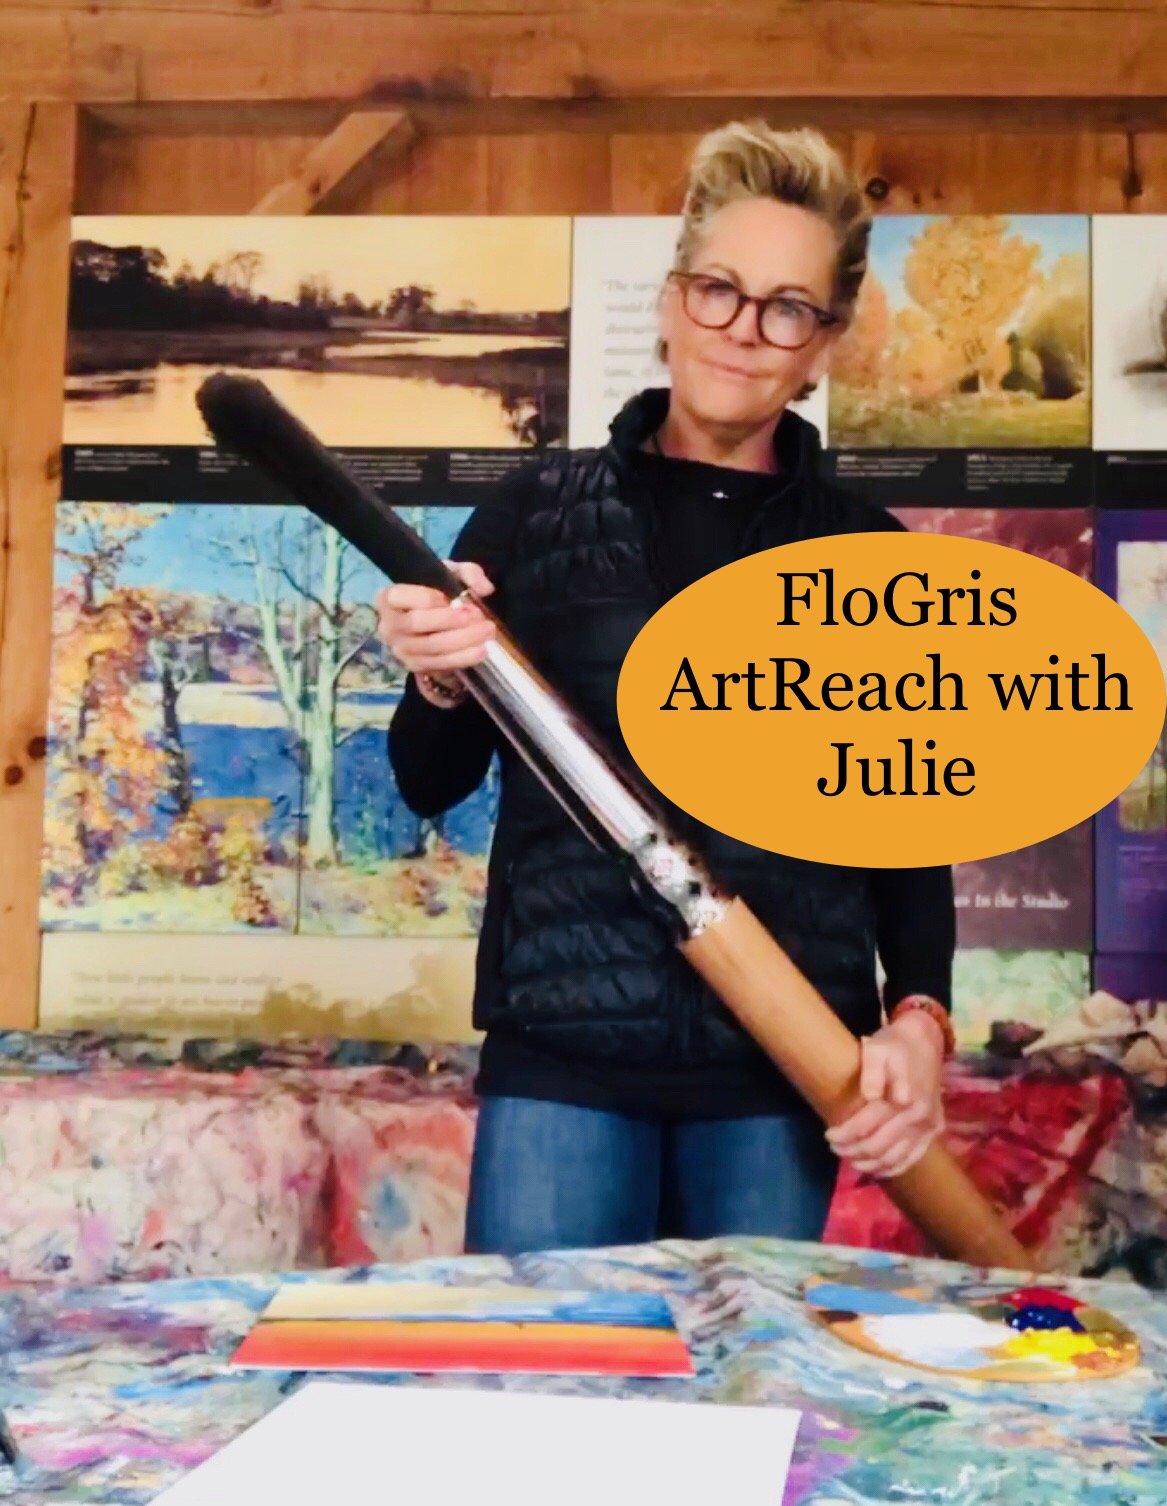 FloGris ArtReach with Julie